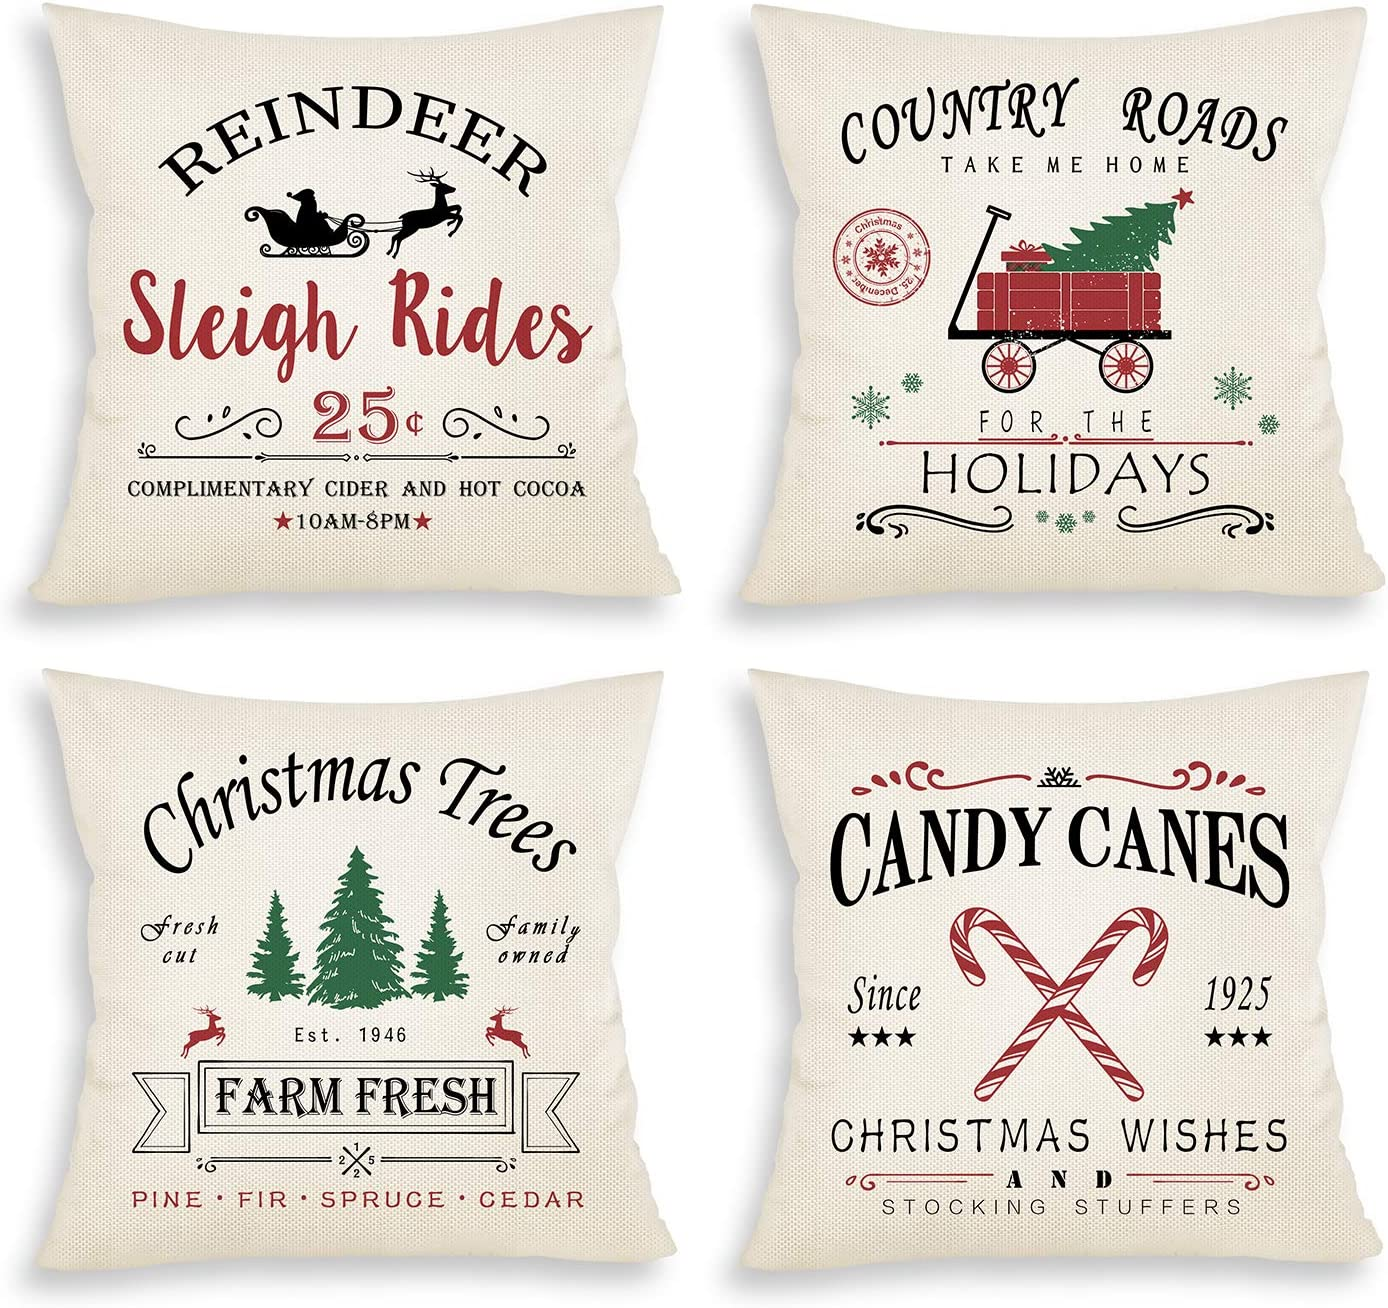 Sionoiur Christmas Decorations Throw Pillow Covers 18x18 Set of 4, Christmas Tree Truck Winter Holiday Throw Pillows Farmhouse Xmas Decor for Home Square Cotton Linen Cushion Cases for Sofa Couch